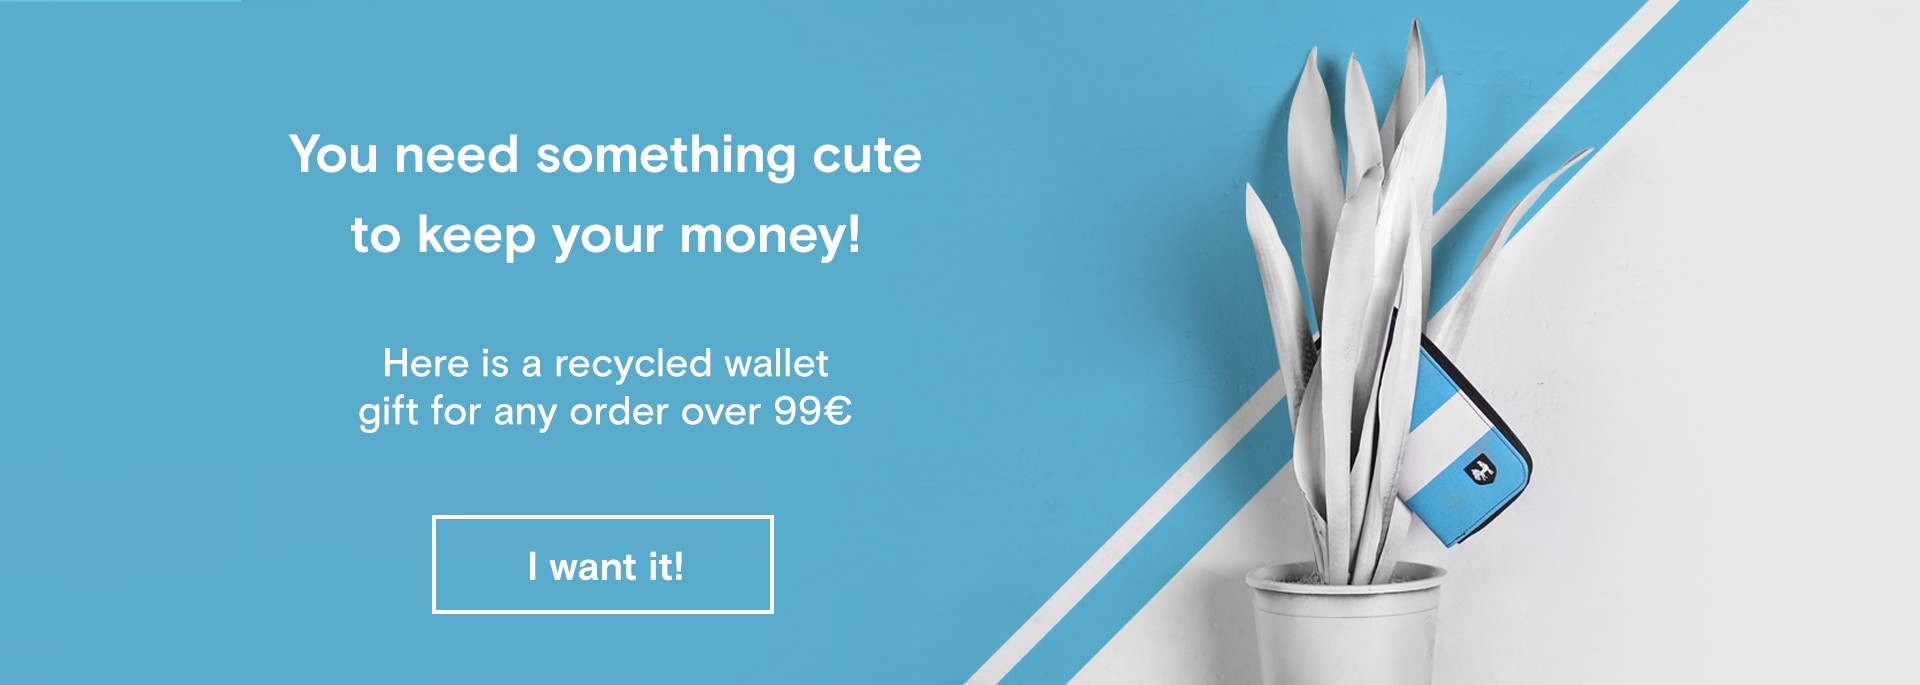 Here is a recycled wallet gift for any order over 99 €